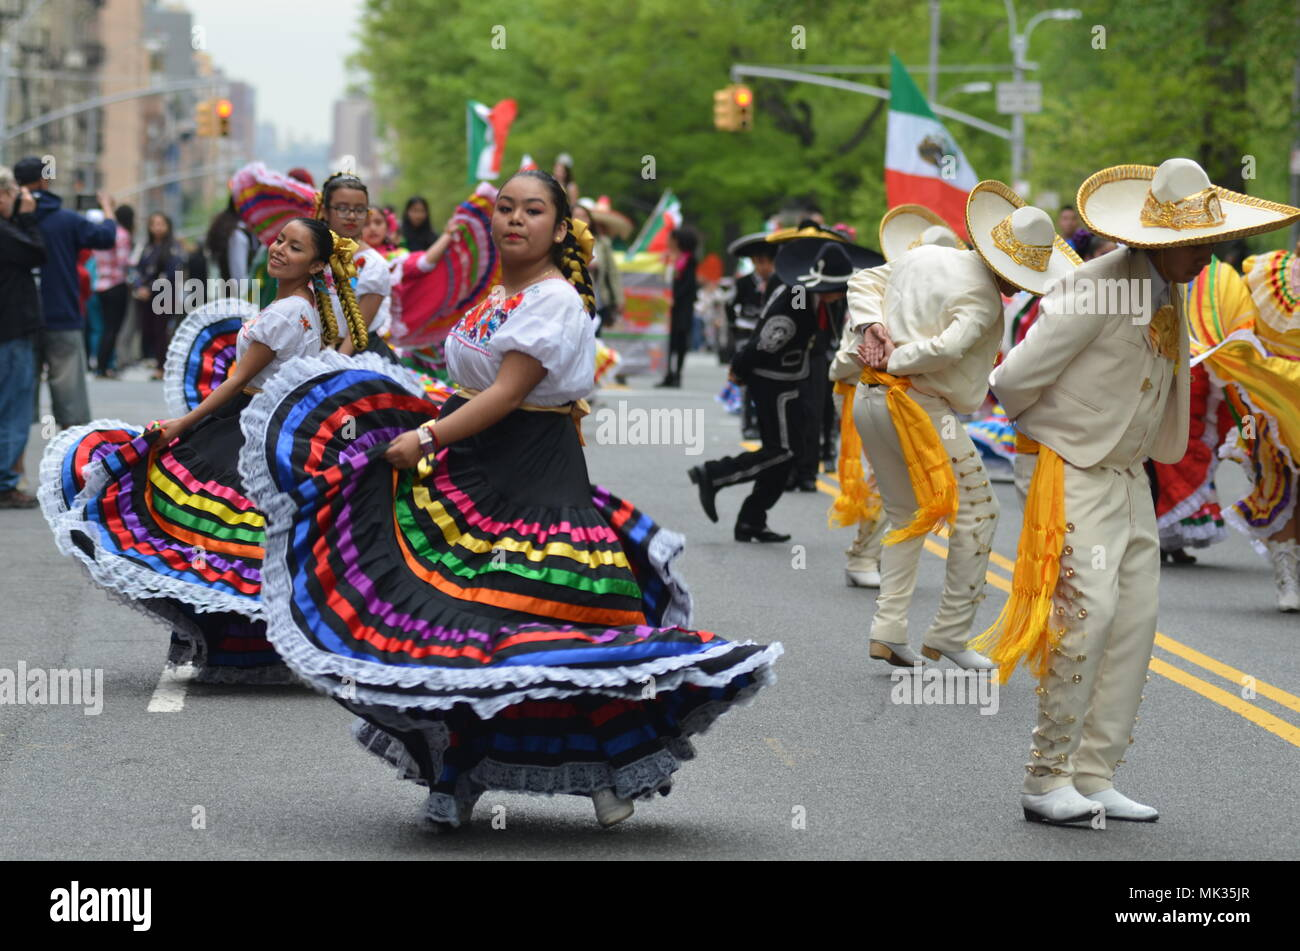 New York Usa May 6 2018 New York City Parti Nts At The 2018 Cinco De Mayo Parade On Upper West Side Of Manhhatn In New York City